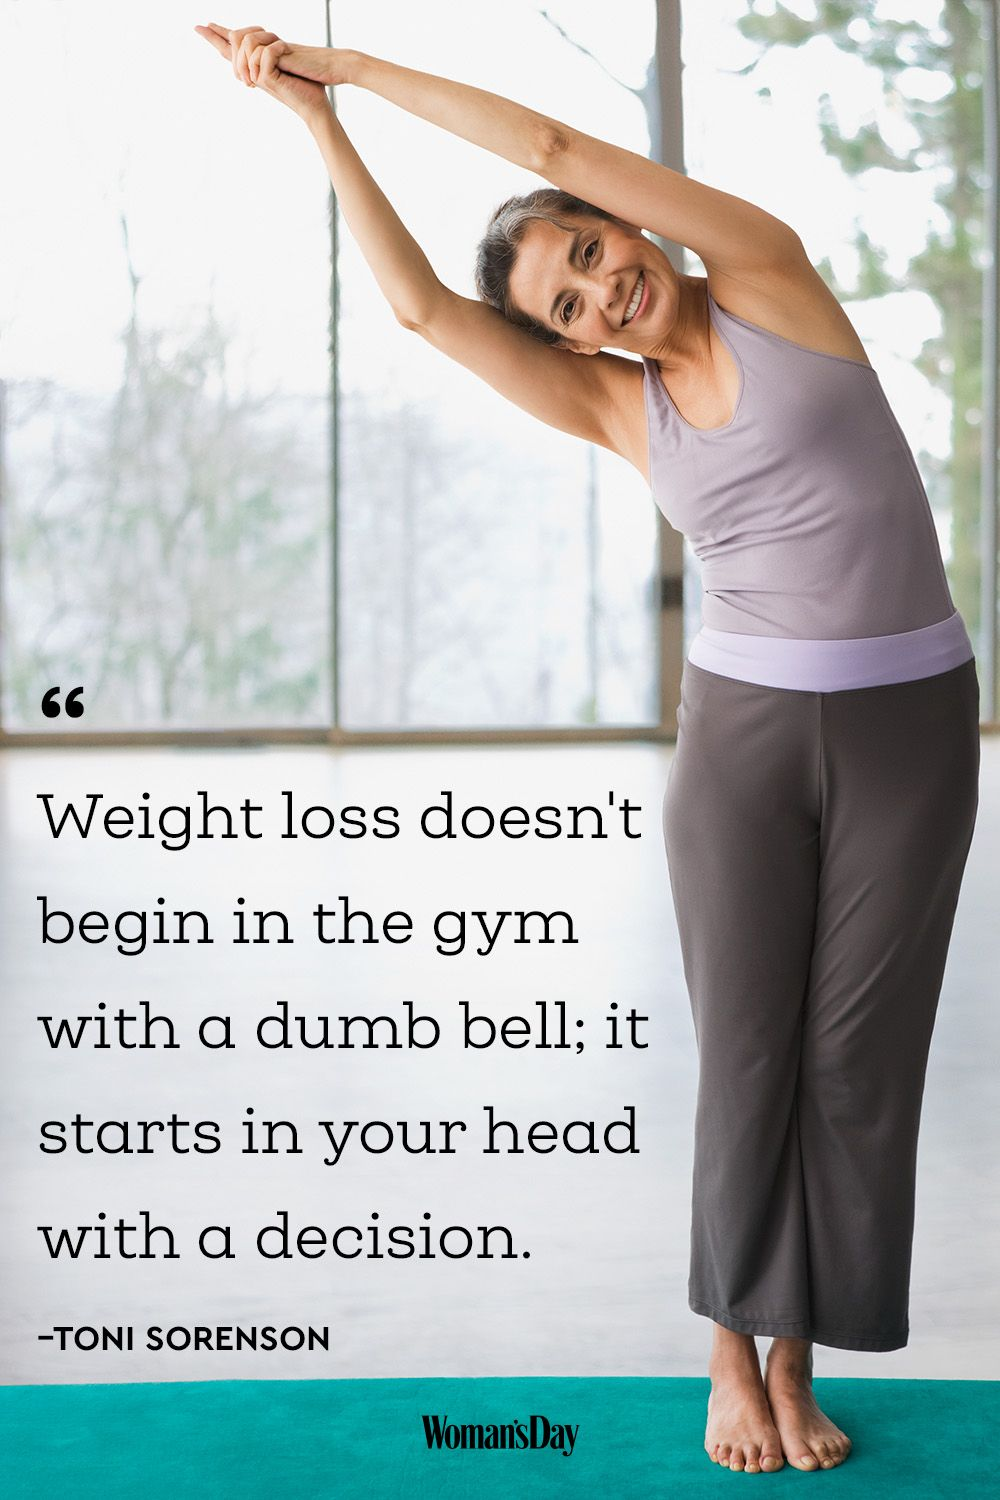 20 Weight Loss Motivation Quotes For Women Motivational Fitness Quotes To Inspire You